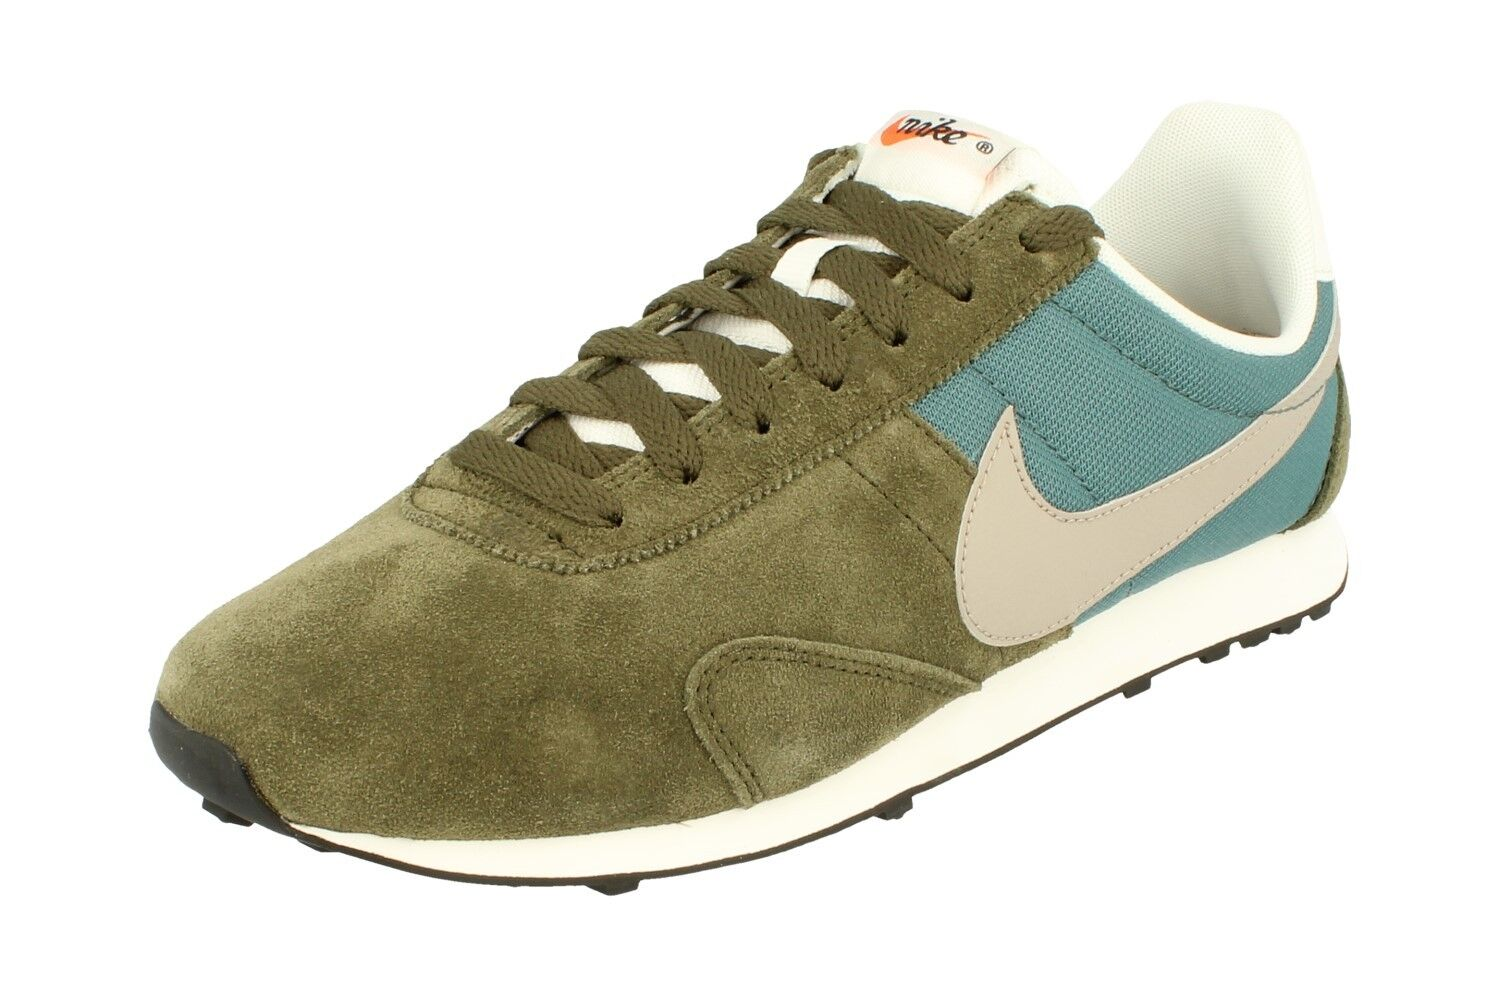 Nike Pre Montreal 17 Mens Running Trainers 898031 Sneakers shoes 301